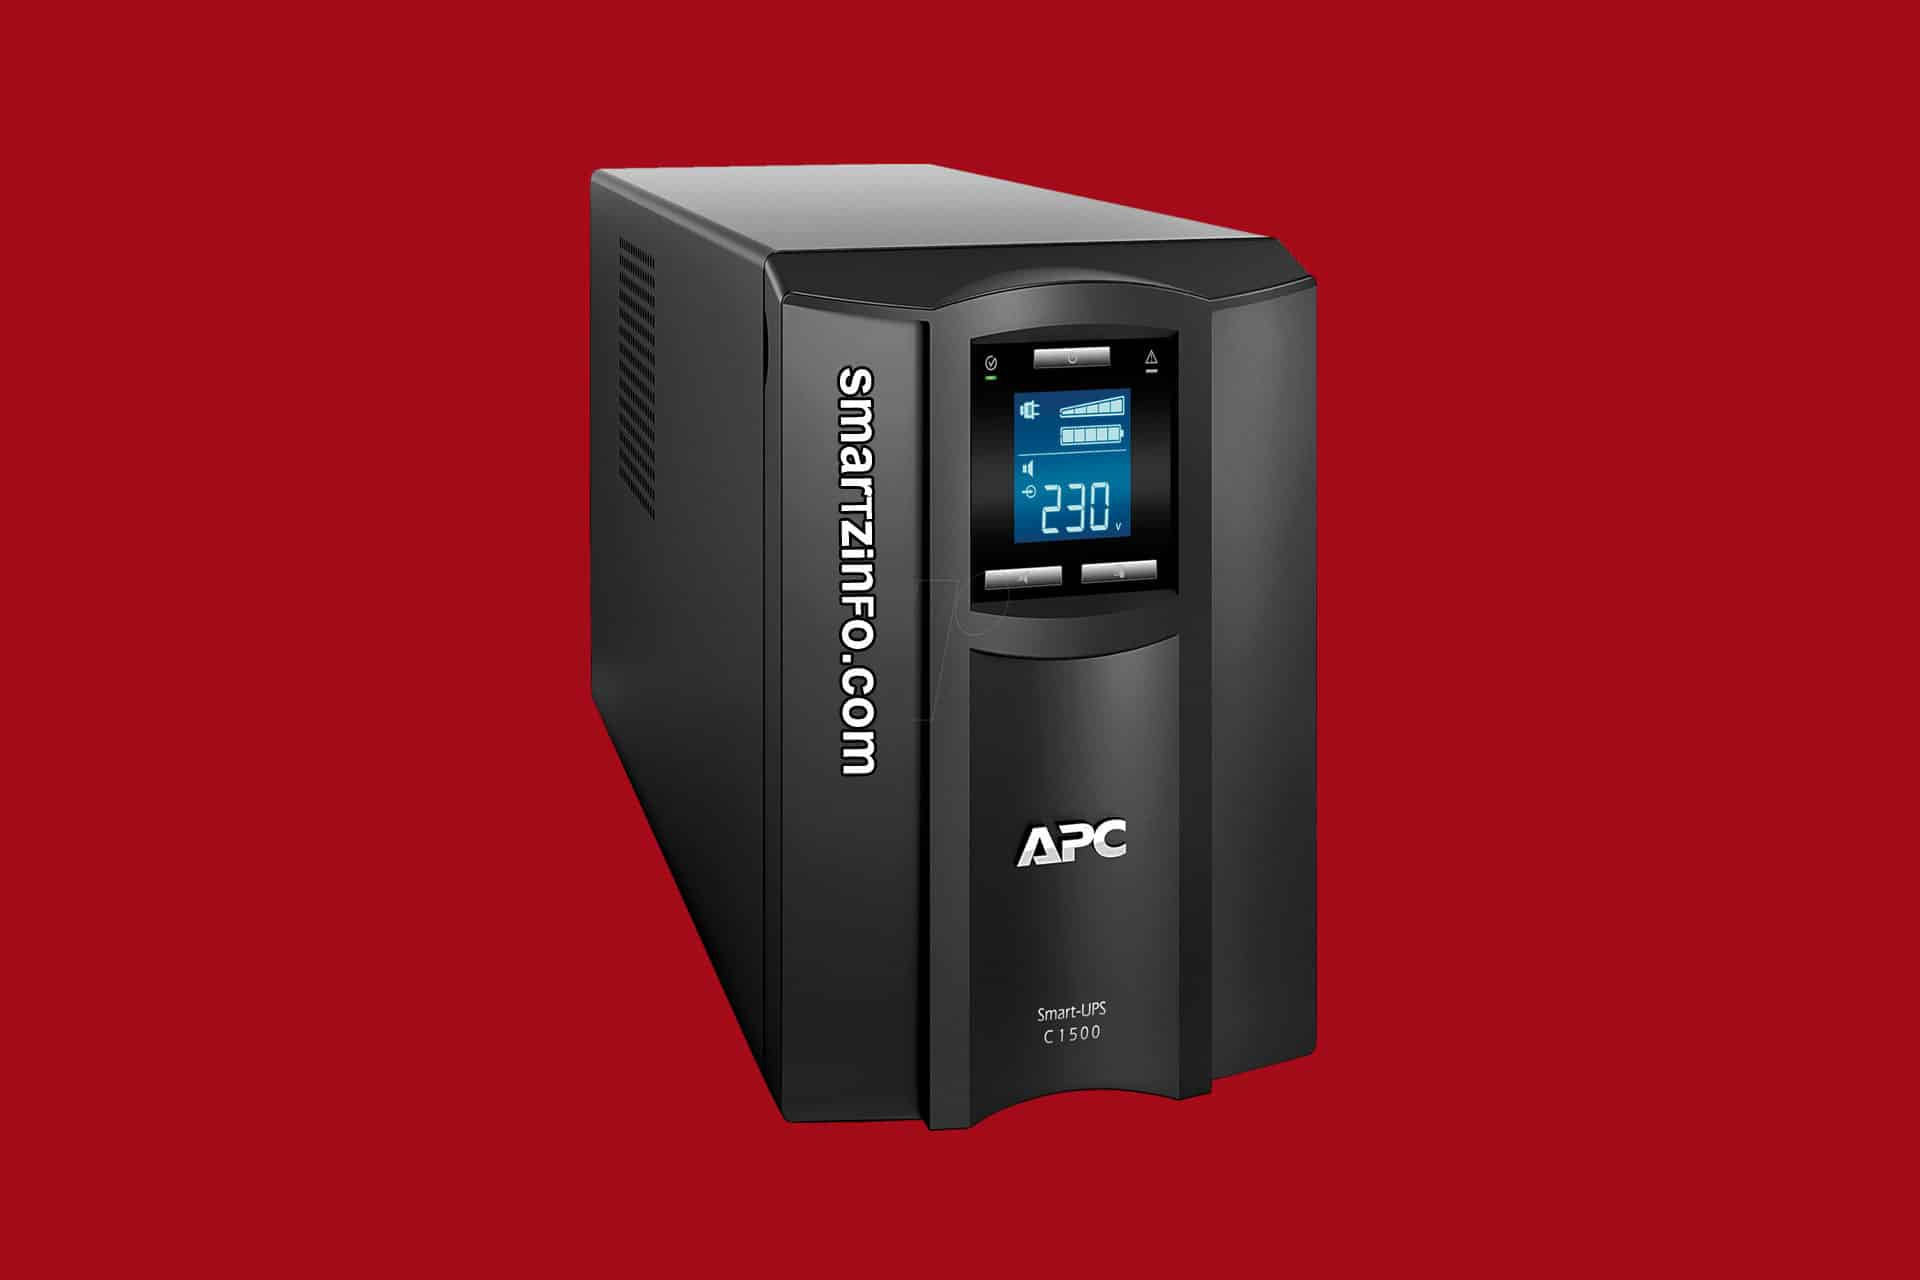 Best UPS For PC In India 2019 (Reviews & Buying Guide)